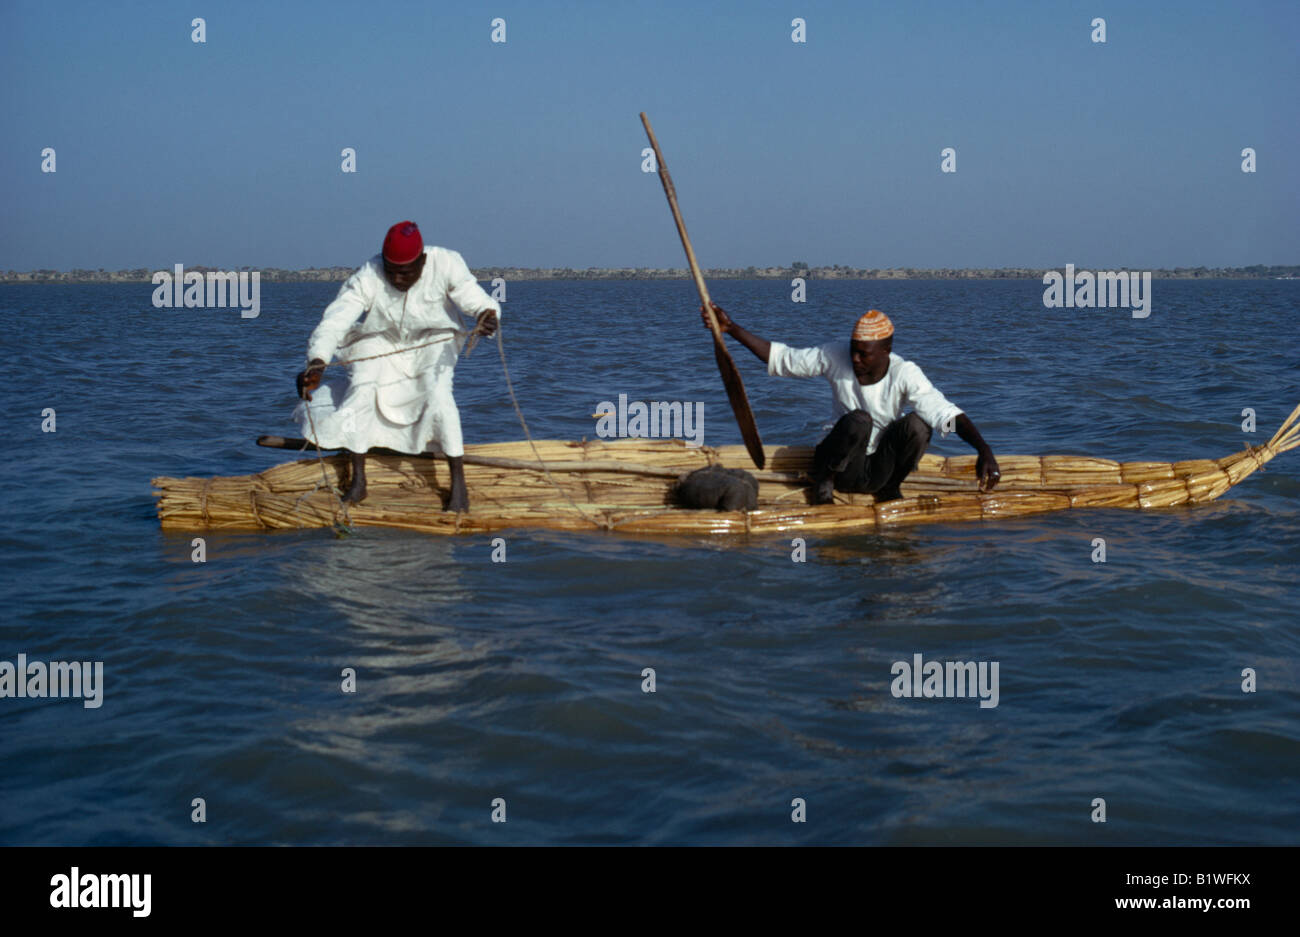 CHAD Central Northern Africa Lake Chad Two Buduma tribesmen fishing in a reed boat - Stock Image